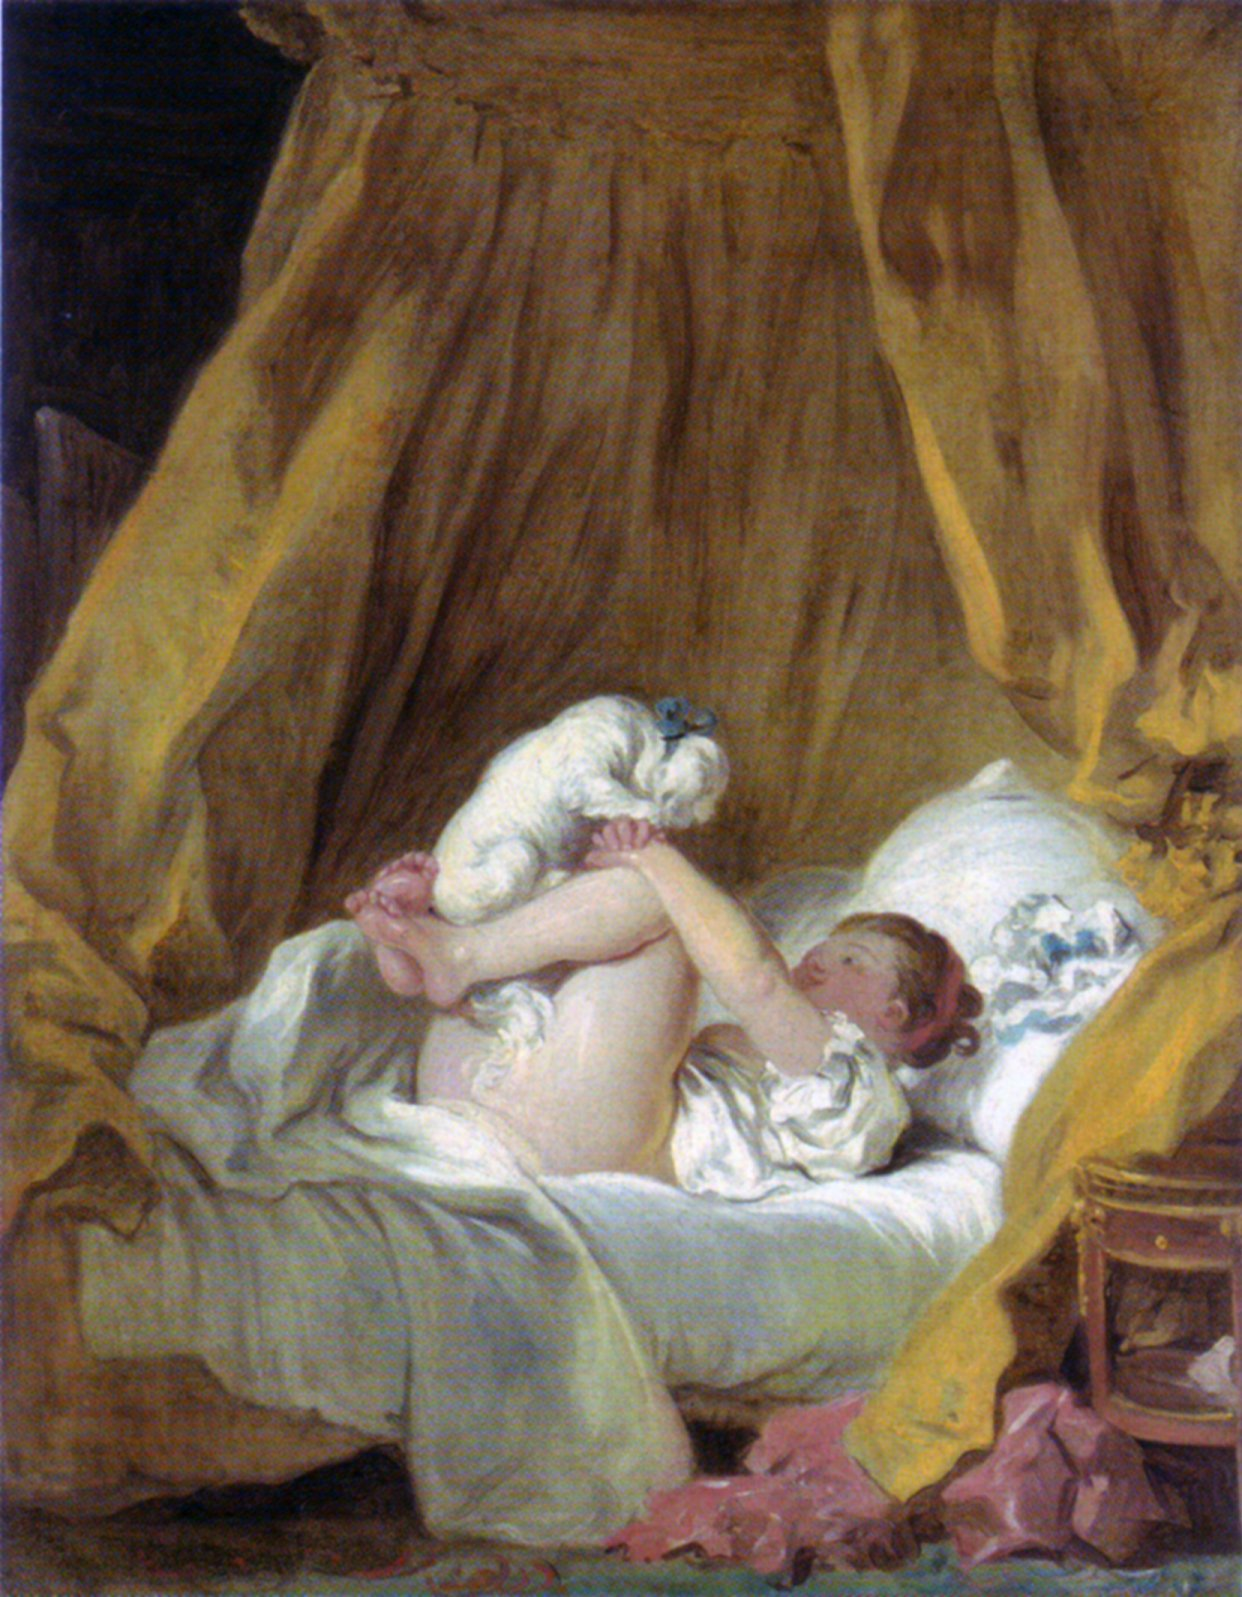 With A Prodigious Output Of Over 550 Paintings, Fragonard Outlived His Own  Fame. The Rococo, And All Associated With It, Was Rejected By Art  Connoisseurs ...